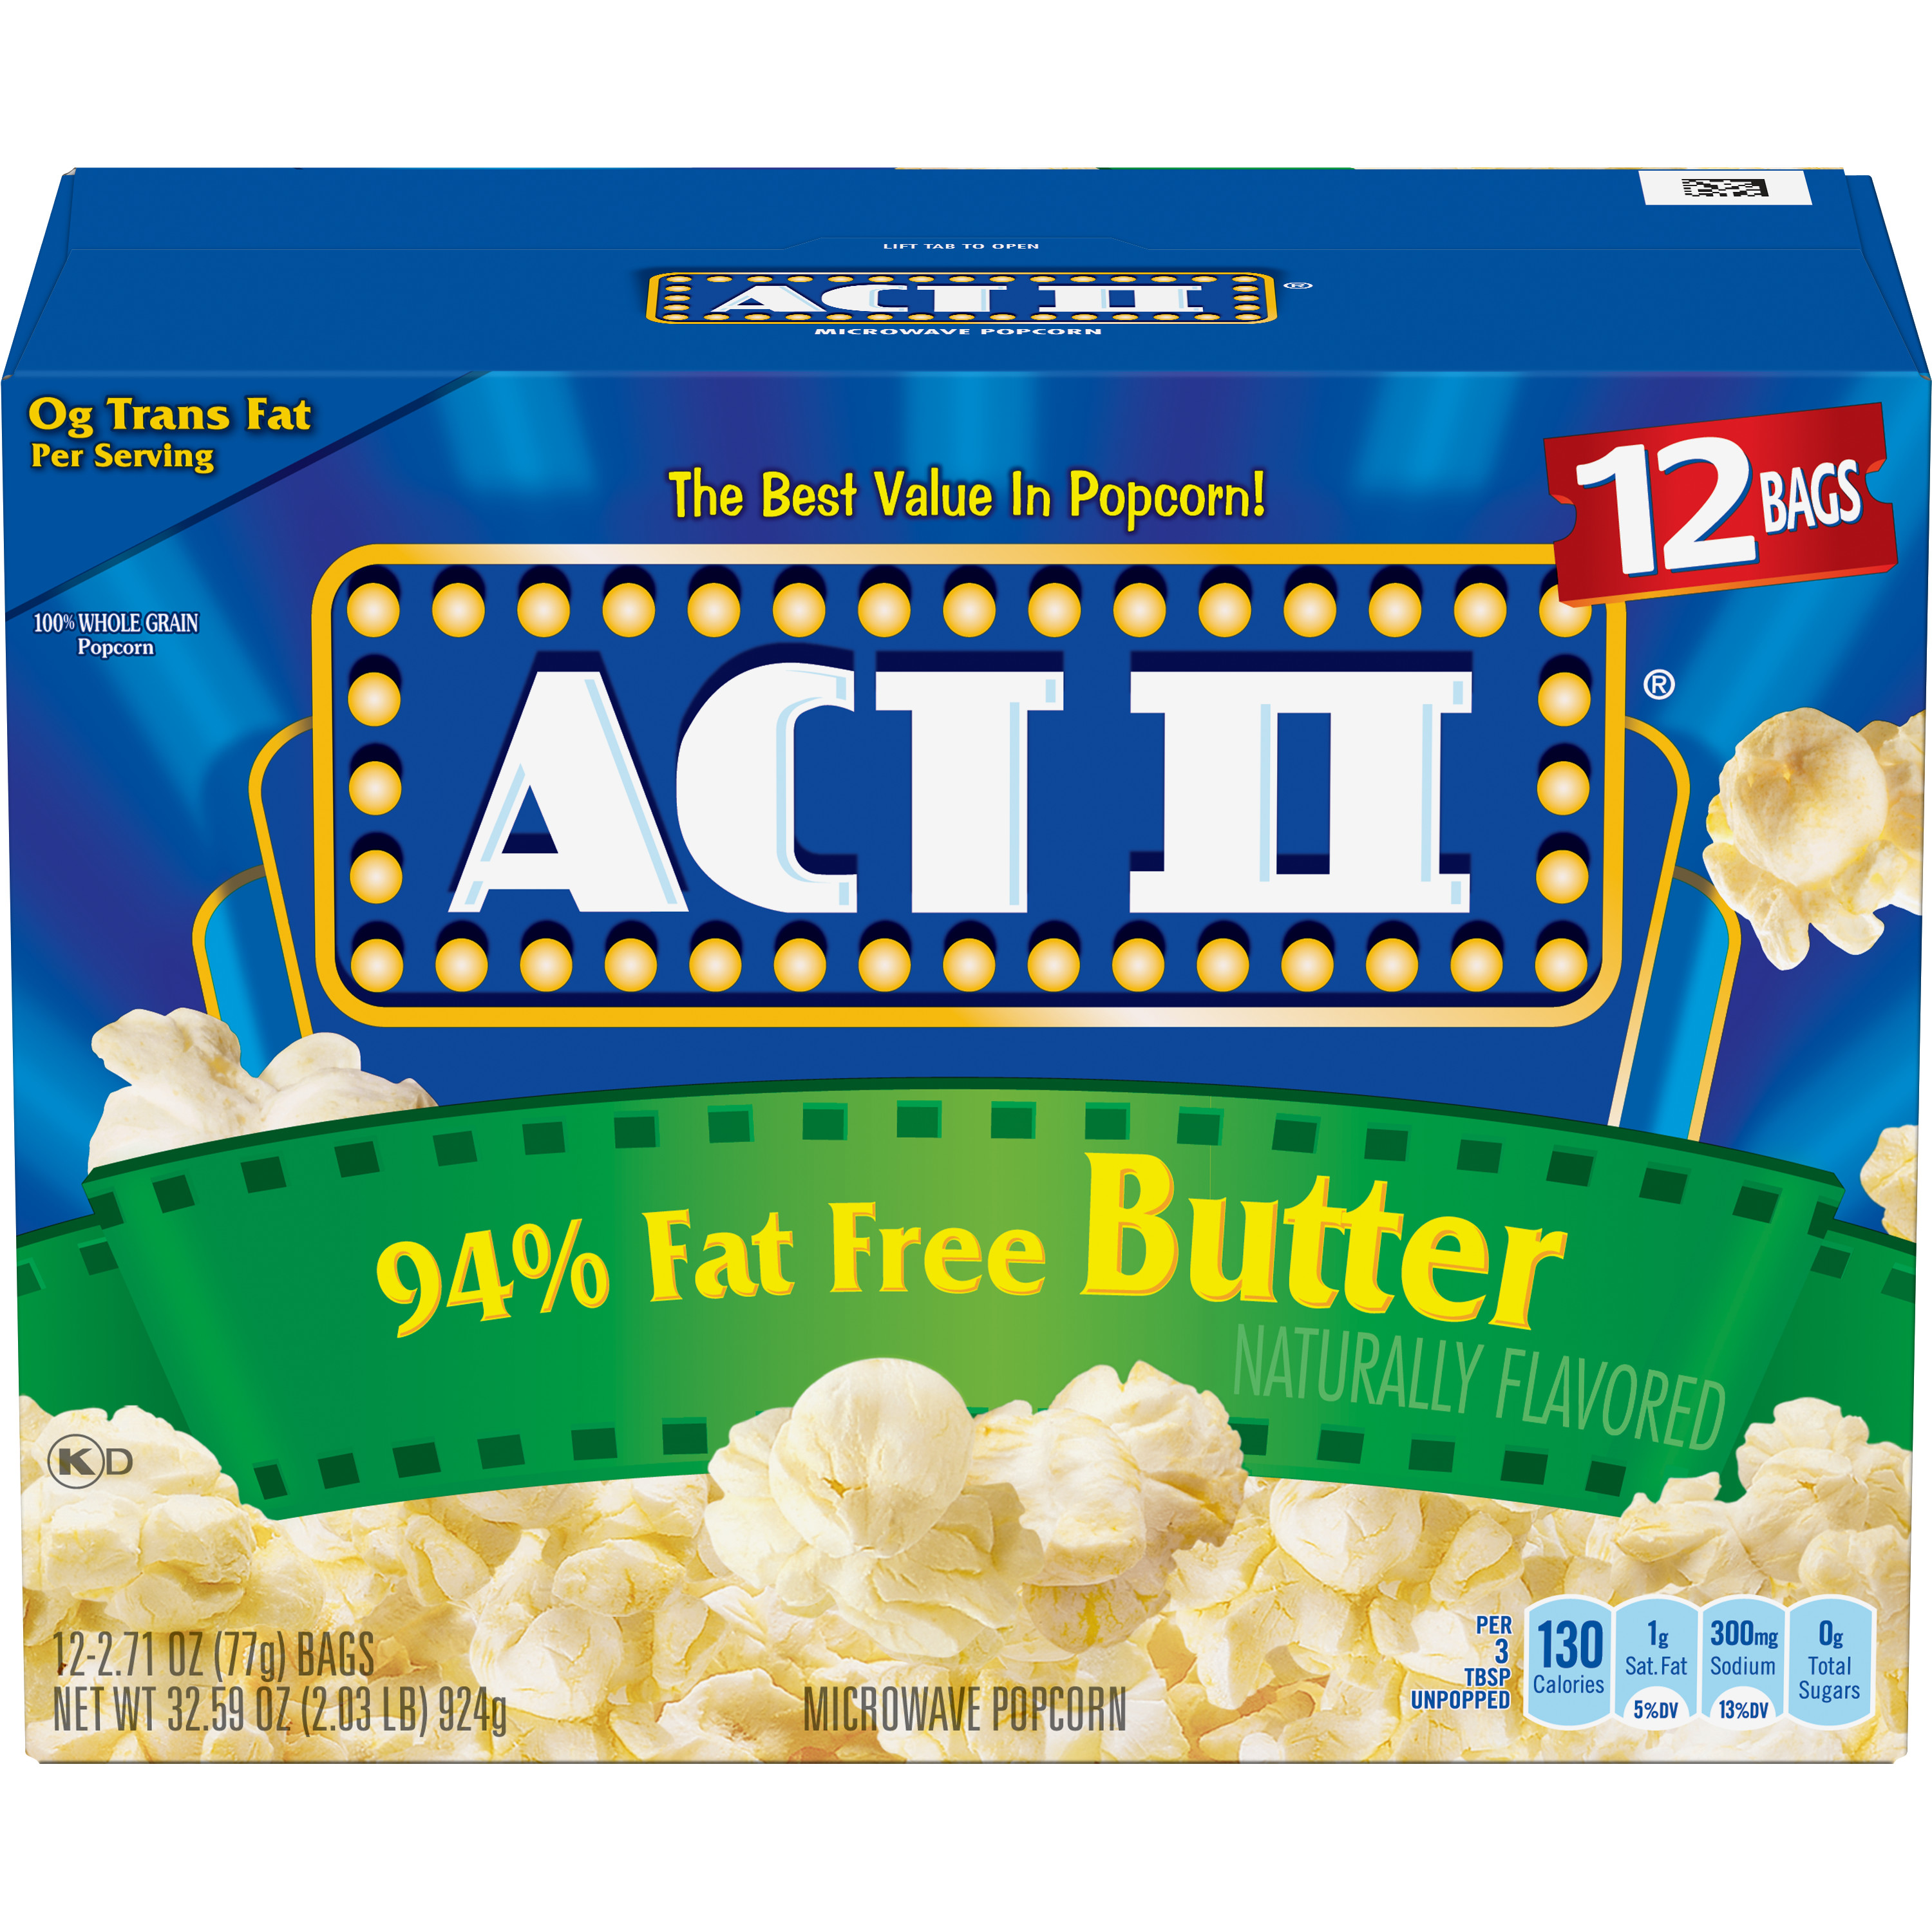 (4 Pack) ACT II Microwave Popcorn, 94% Fat Free Butter, 2.71 Oz, 12 Ct